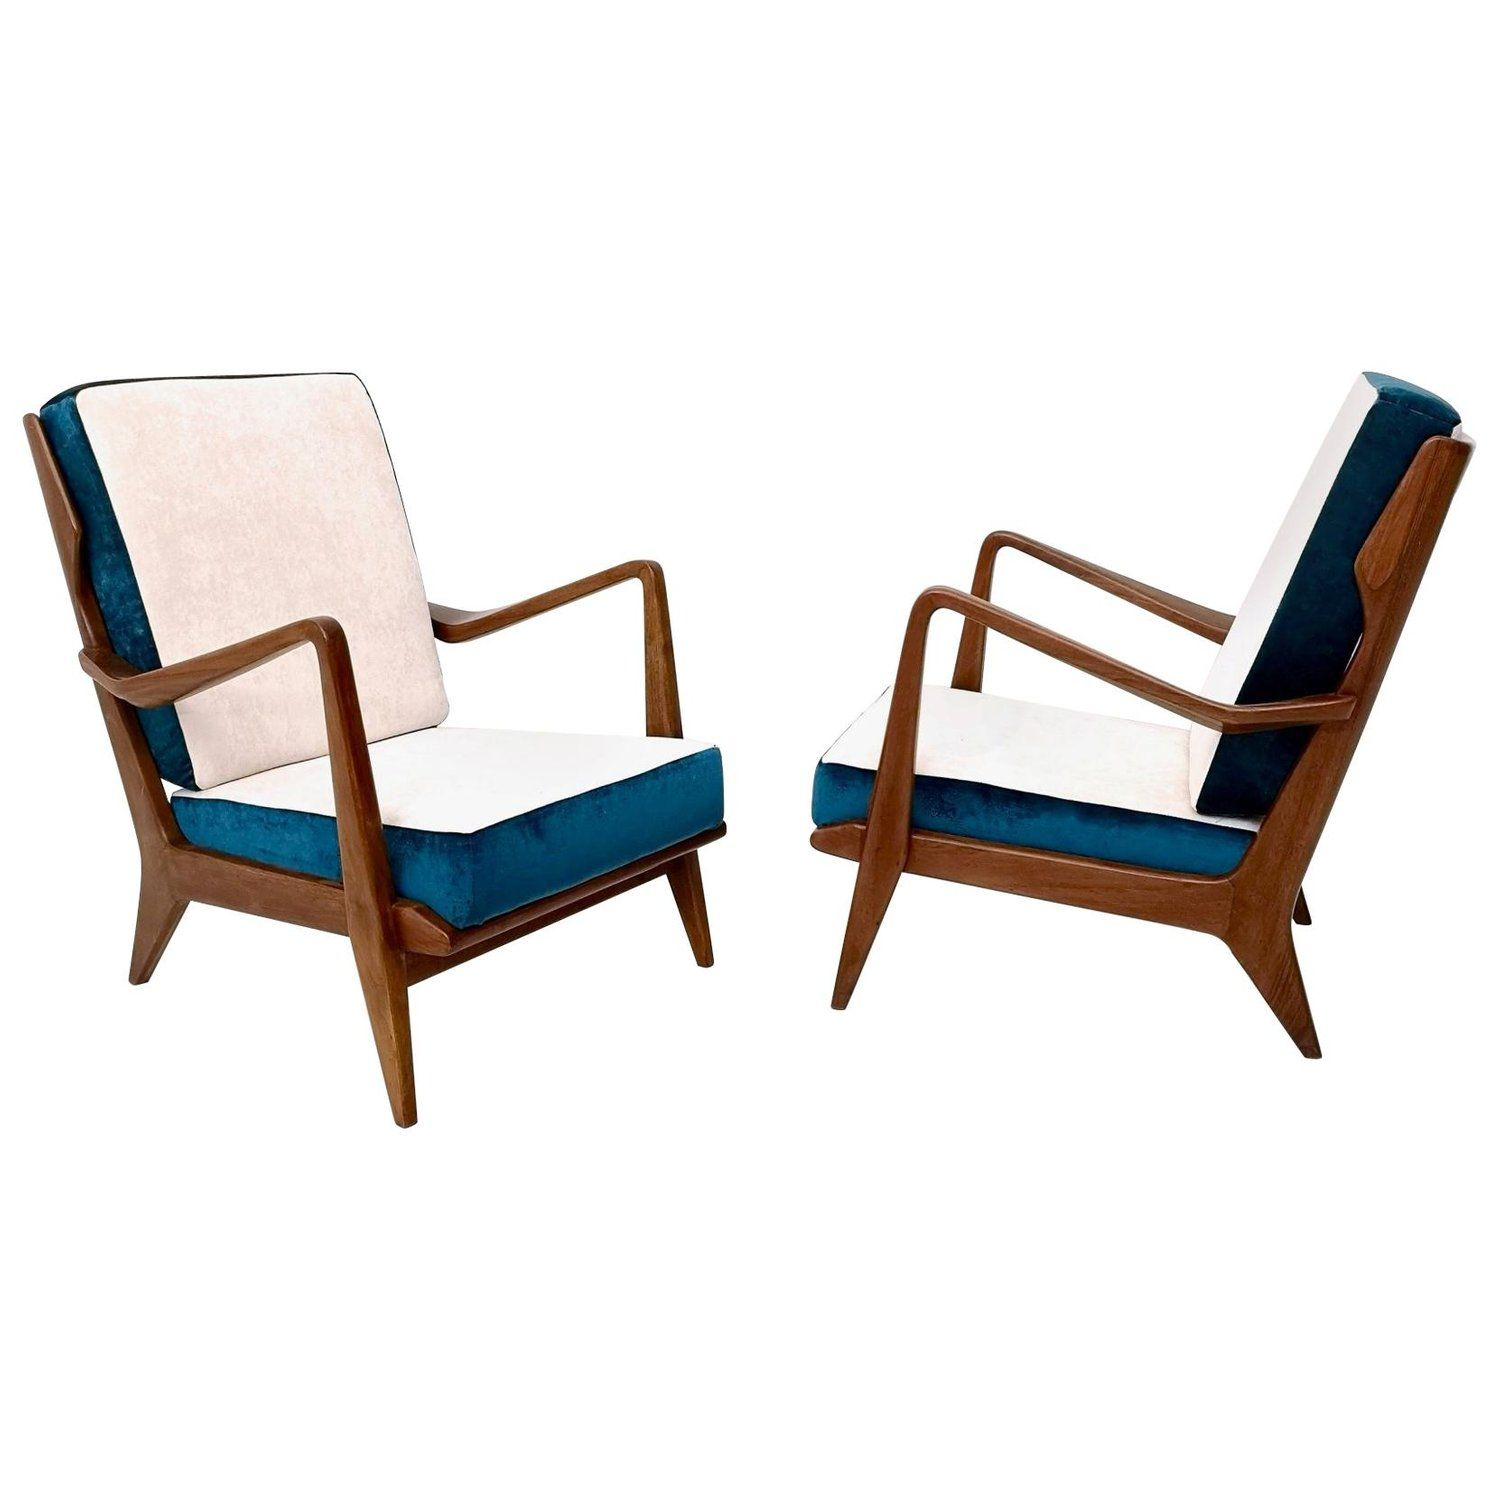 White And Blue Armchairs Mod 516 By Gio Ponti For Cassina Italy